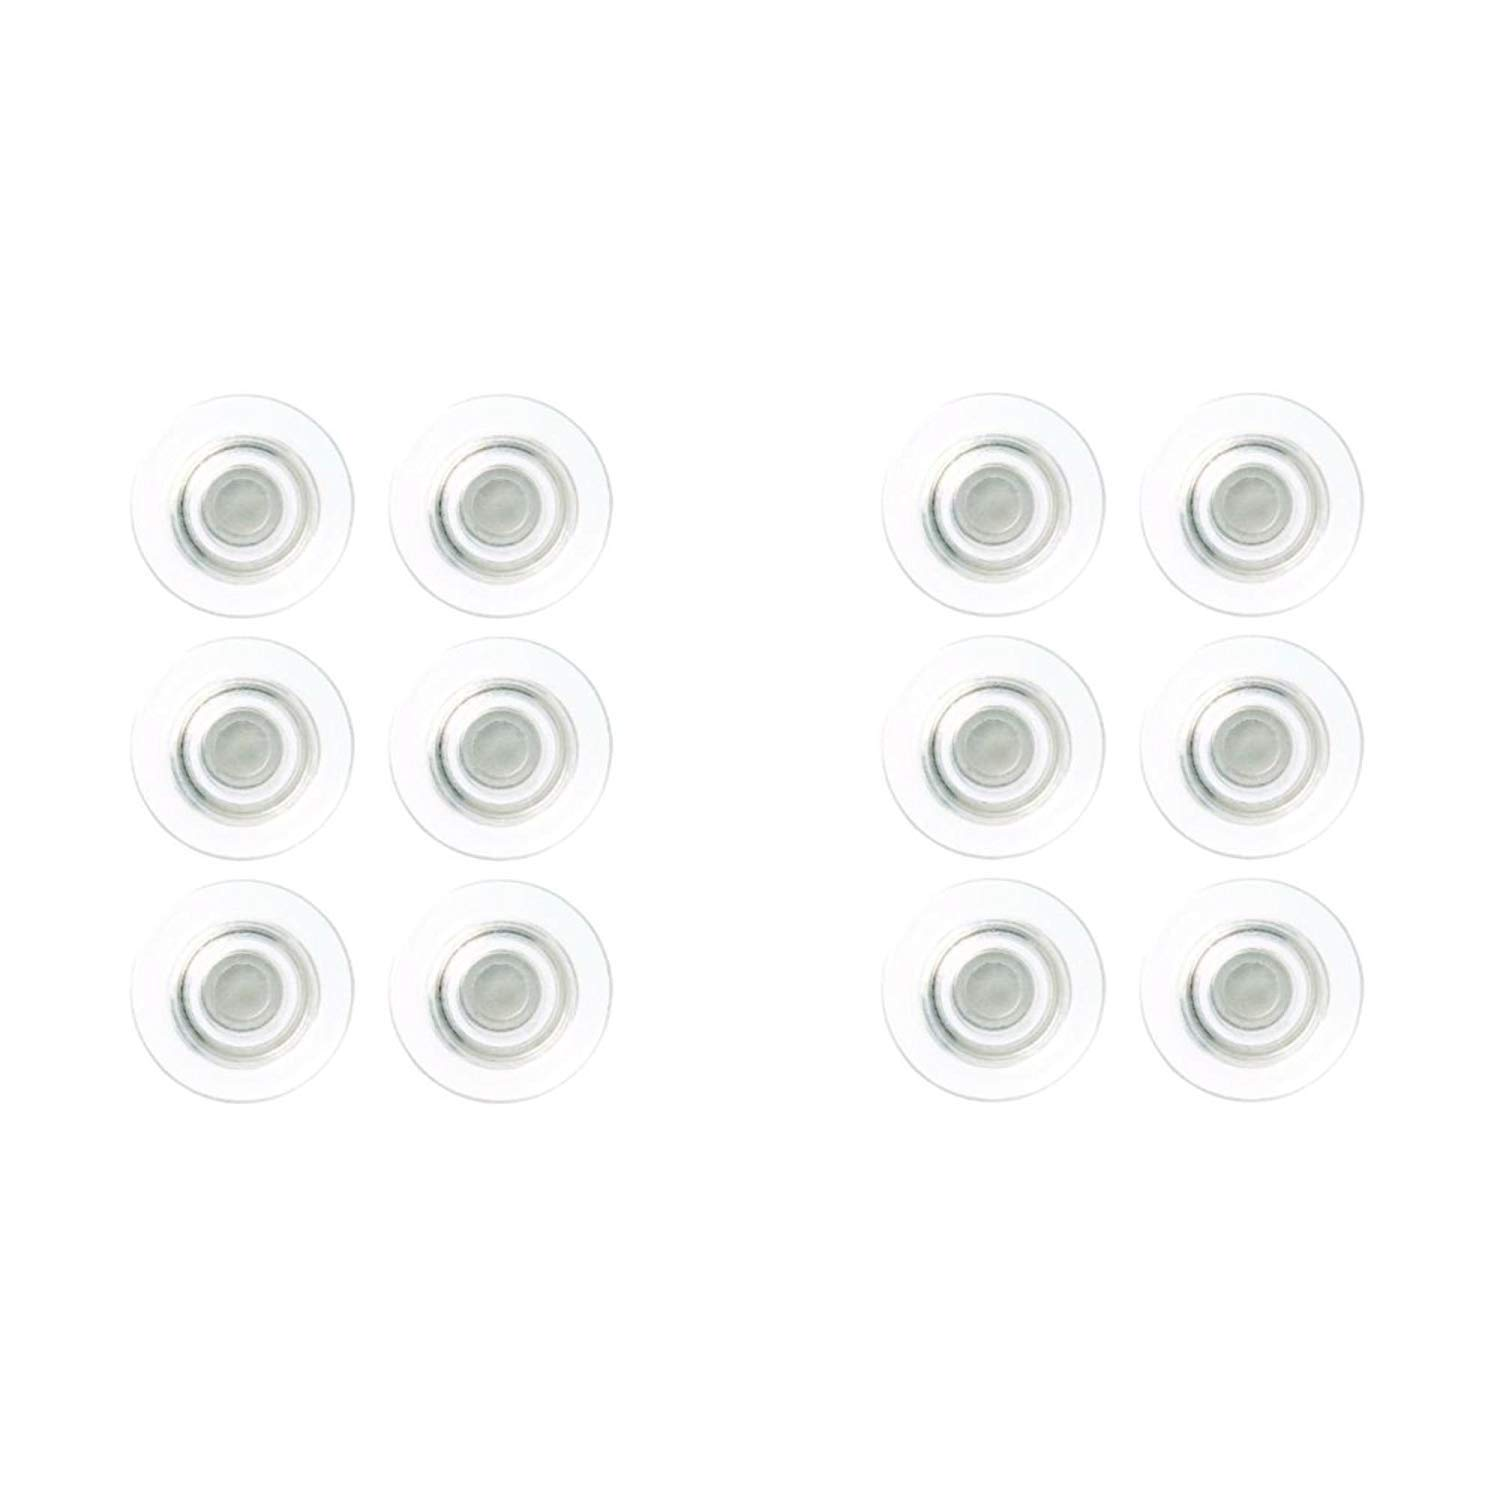 Quartet Rare Earth Magnets, Large, 6 Pack (85391) ACCO Brands